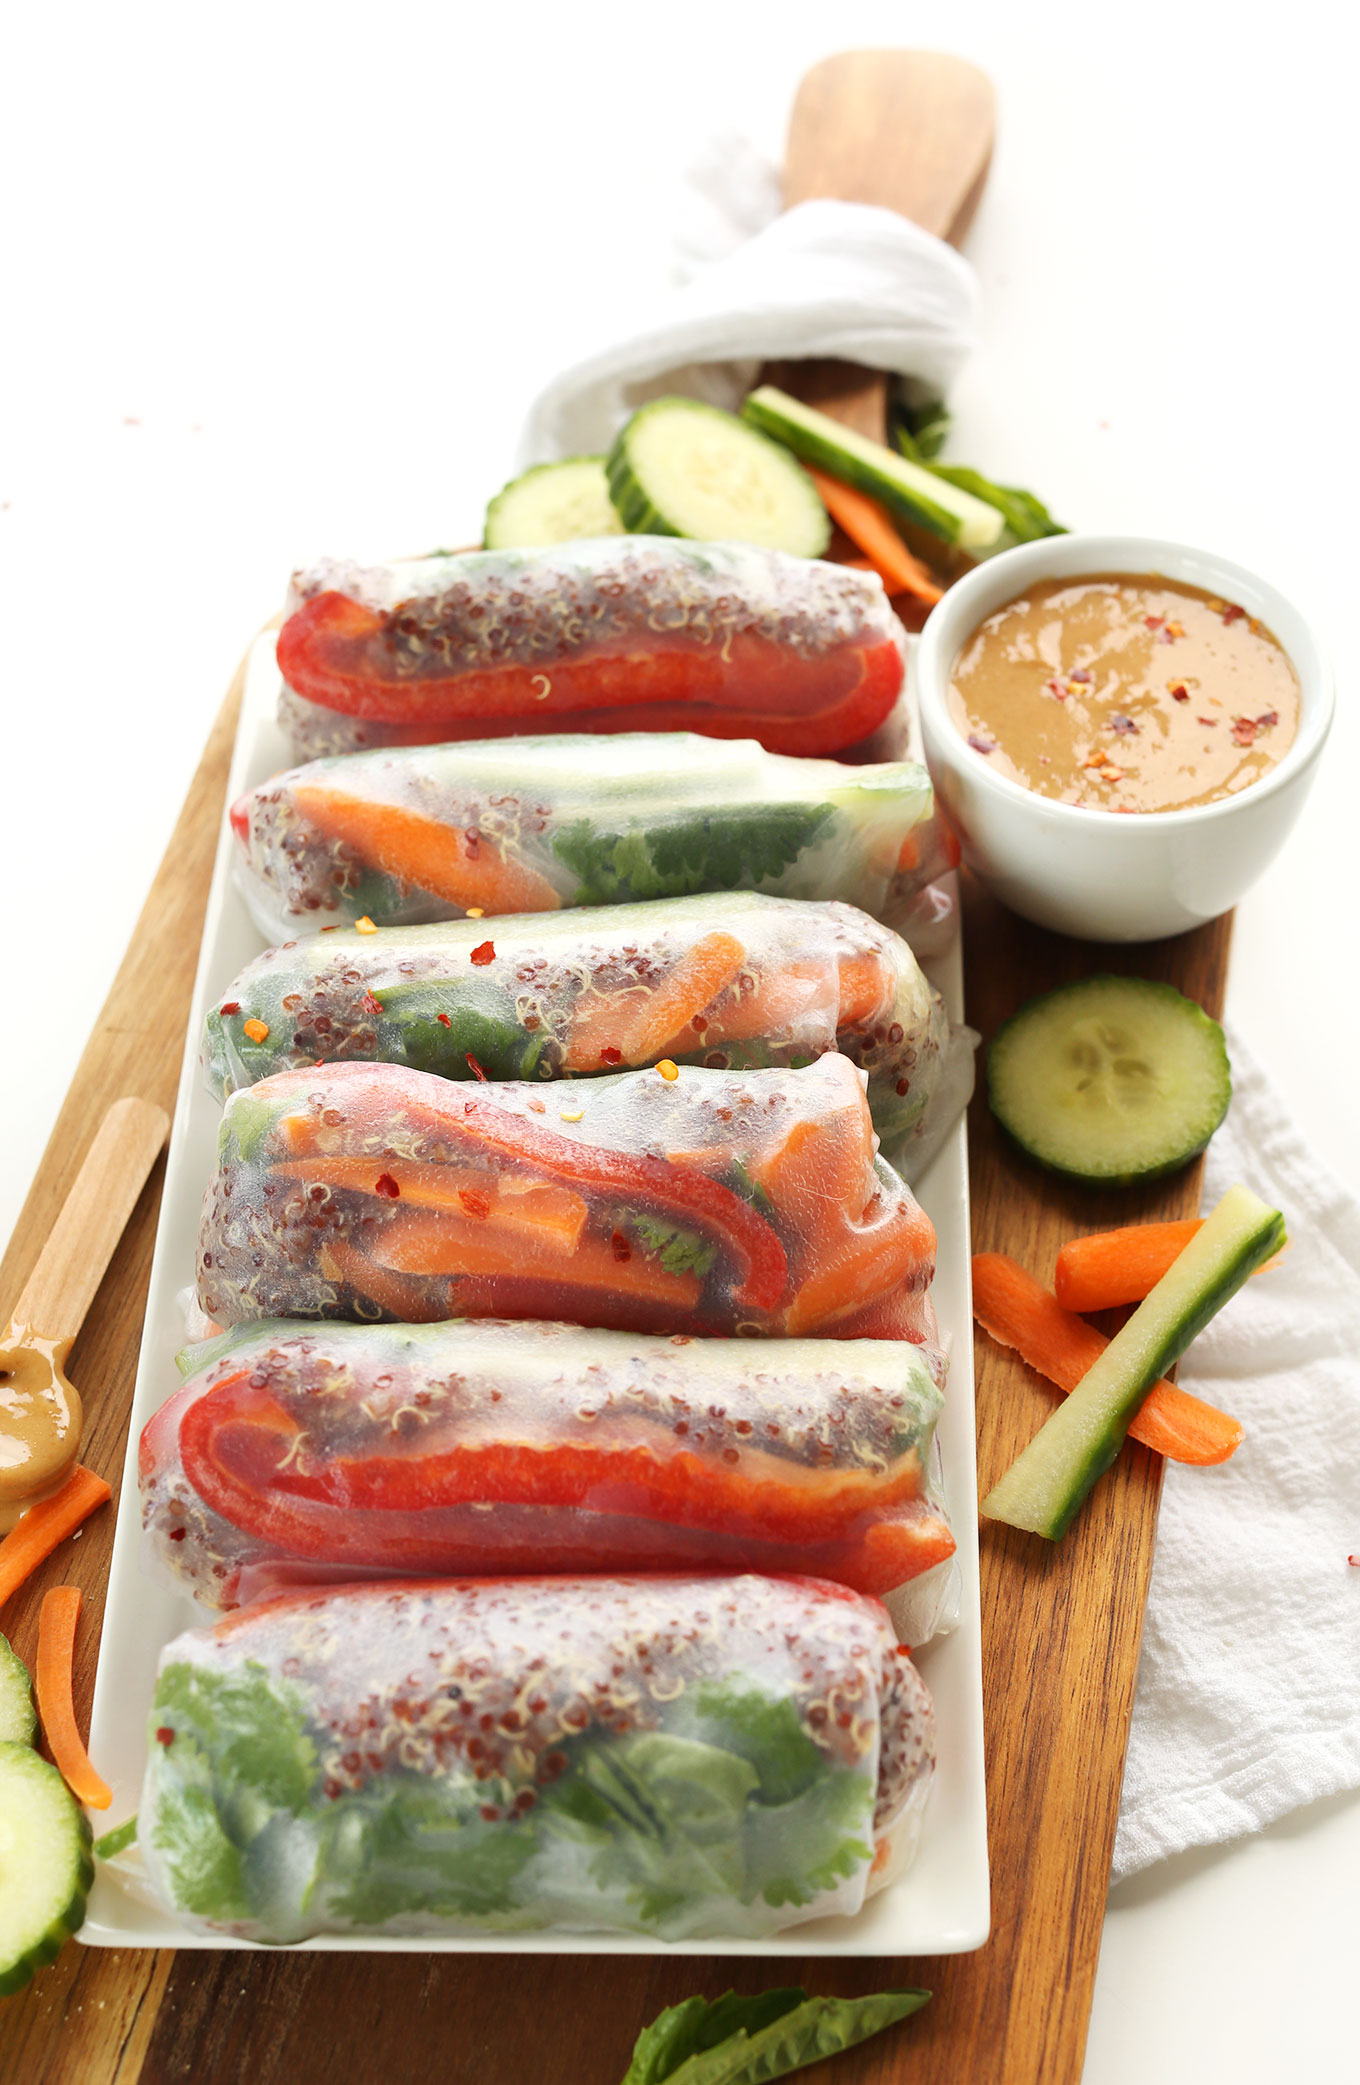 Platter of gluten-free vegan Quinoa Spring Rolls with a bowl of Cashew Dipping Sauce